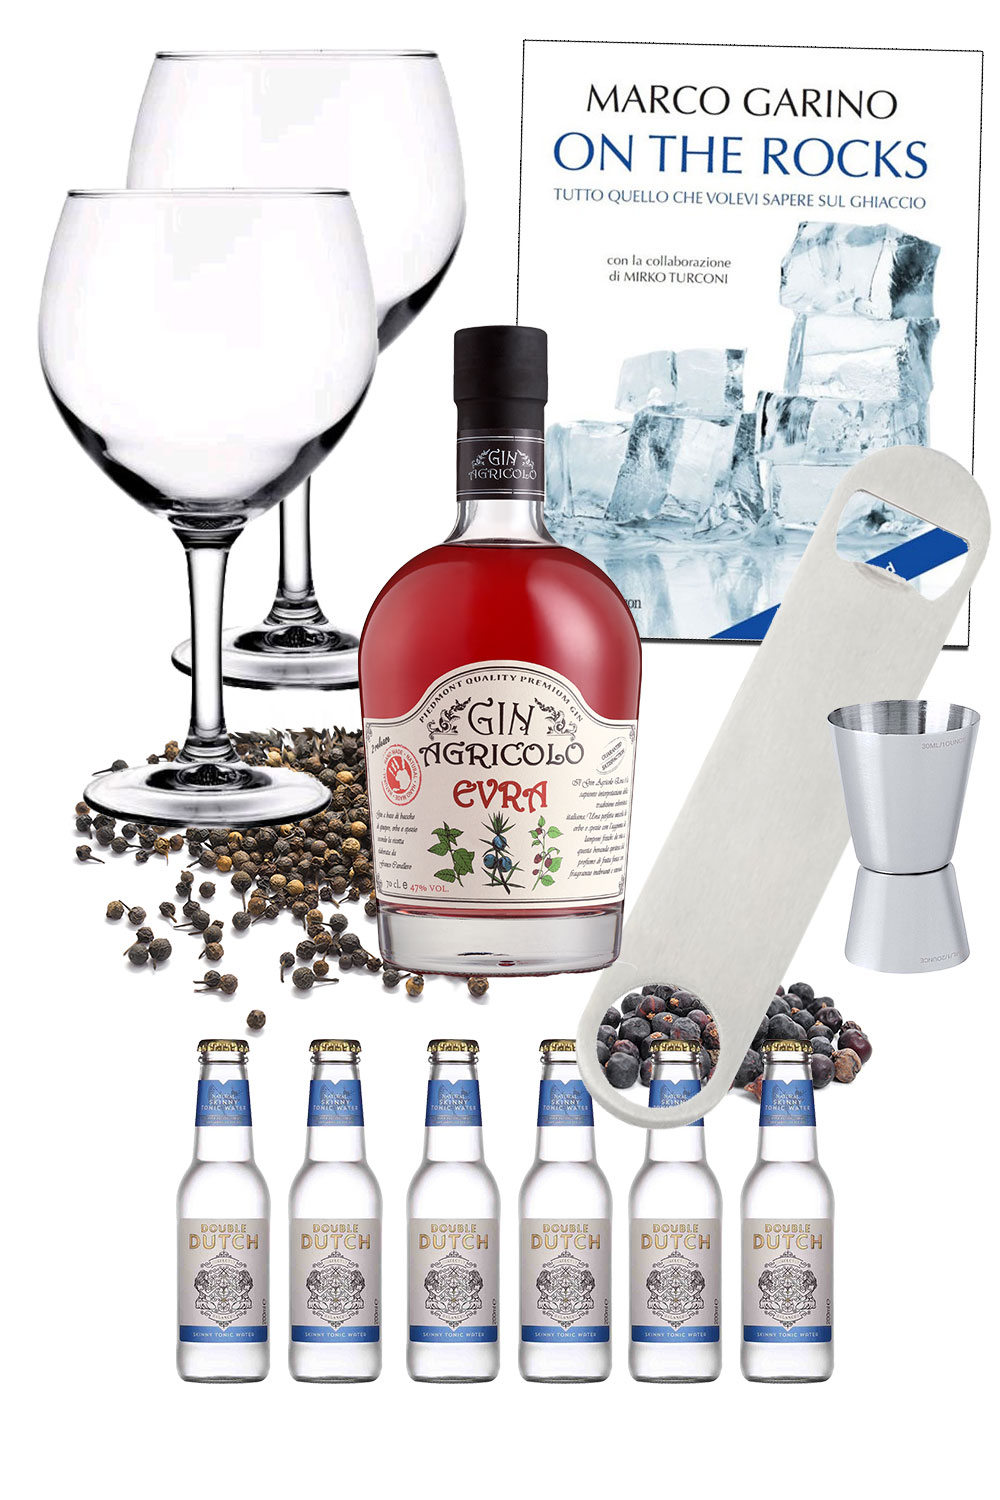 Gin Agricolo Evra – Brain Power Home Kit